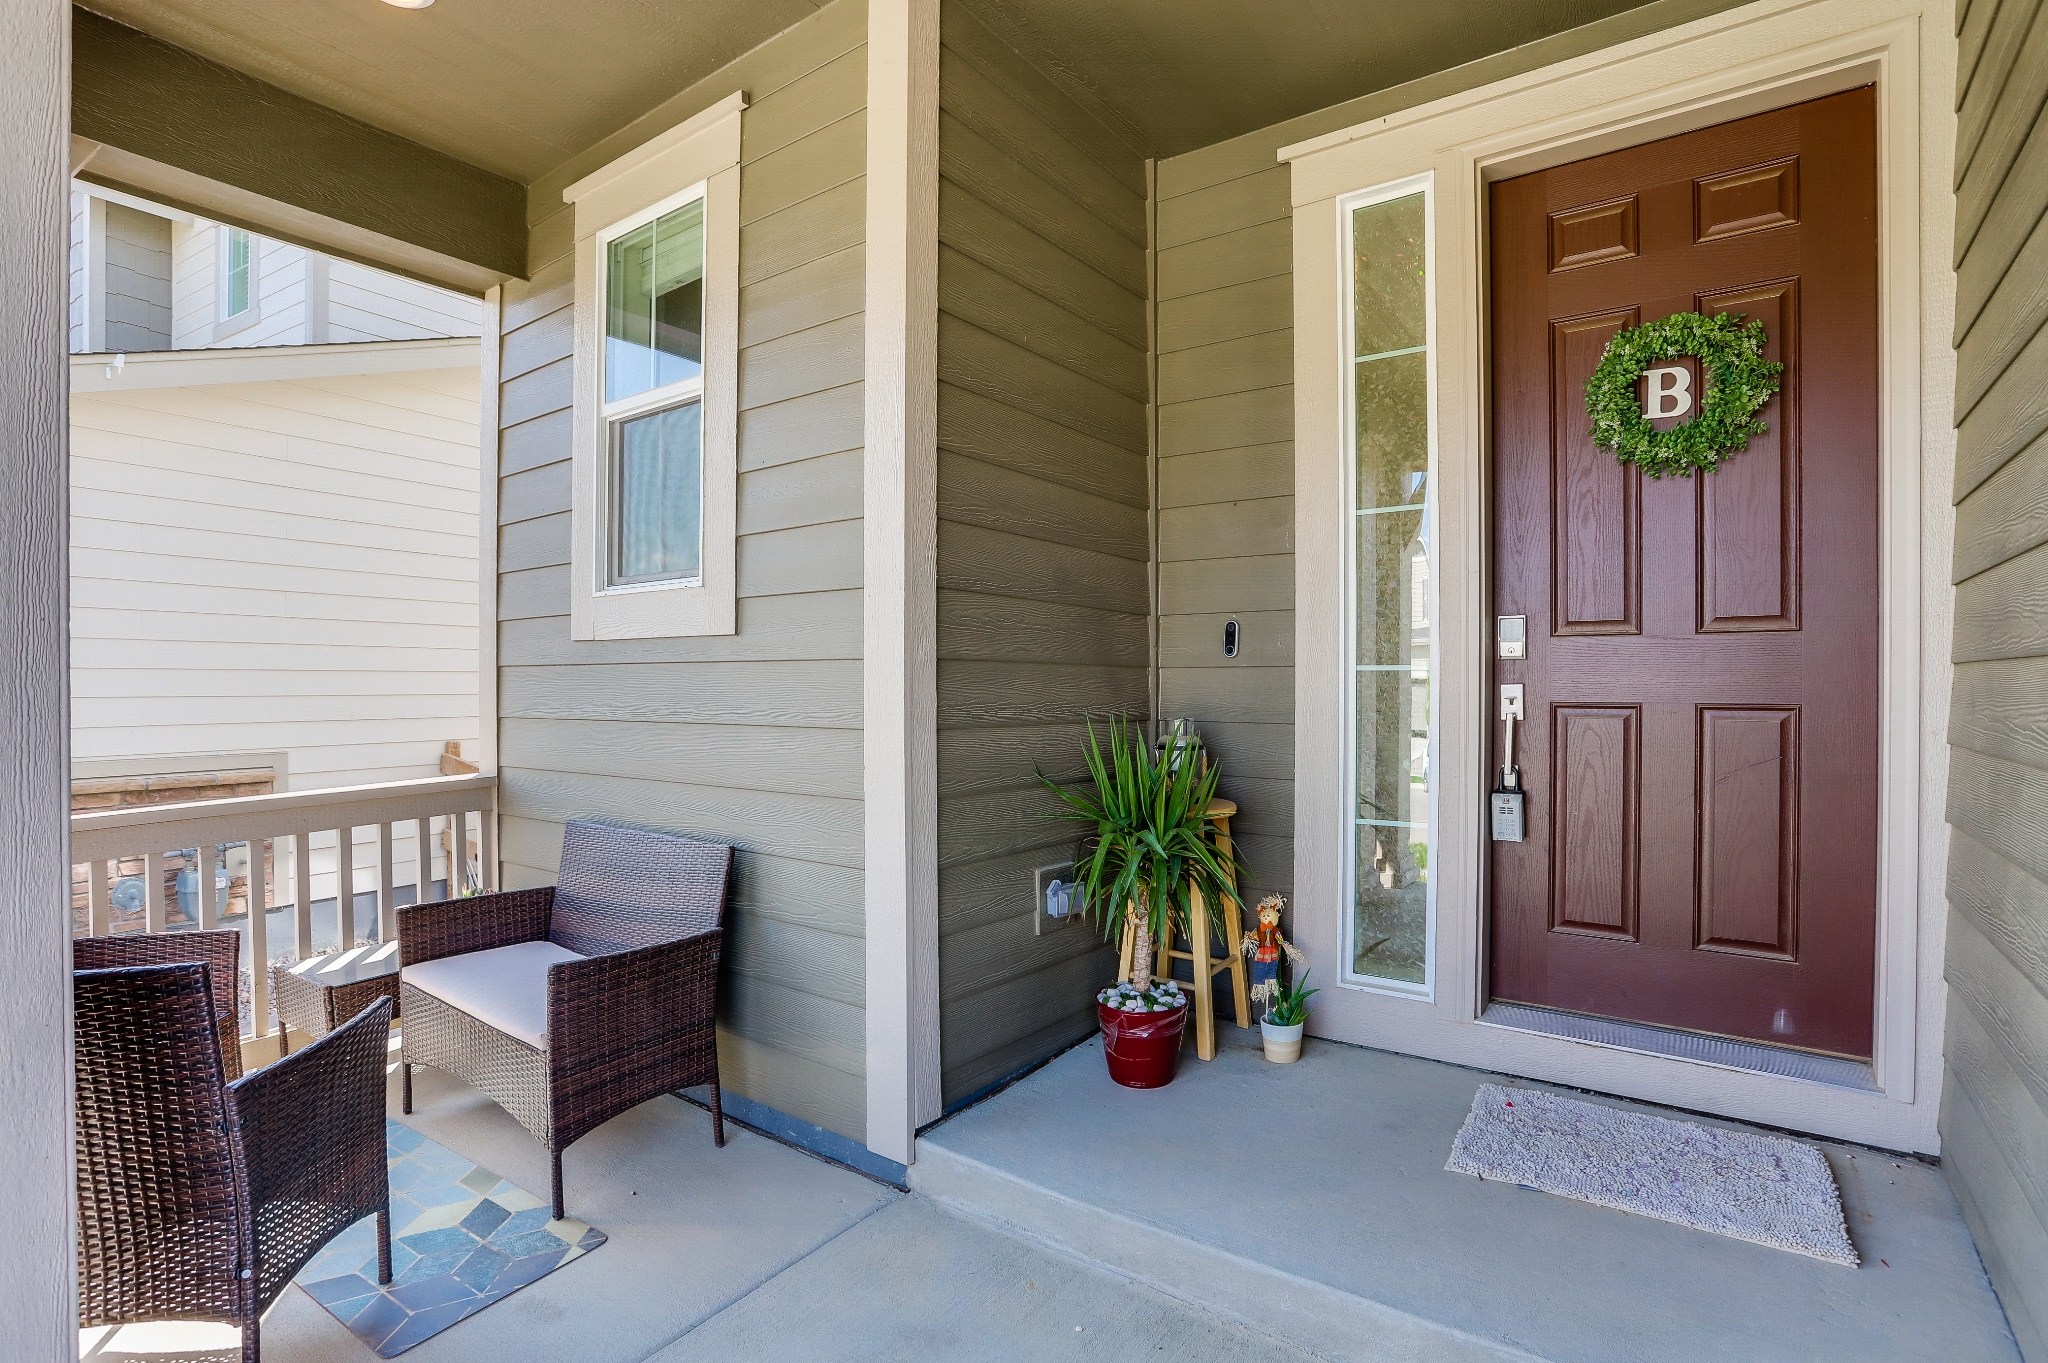 REAL ESTATE LISTING: 12813 Clearview St Firestone Front Entry